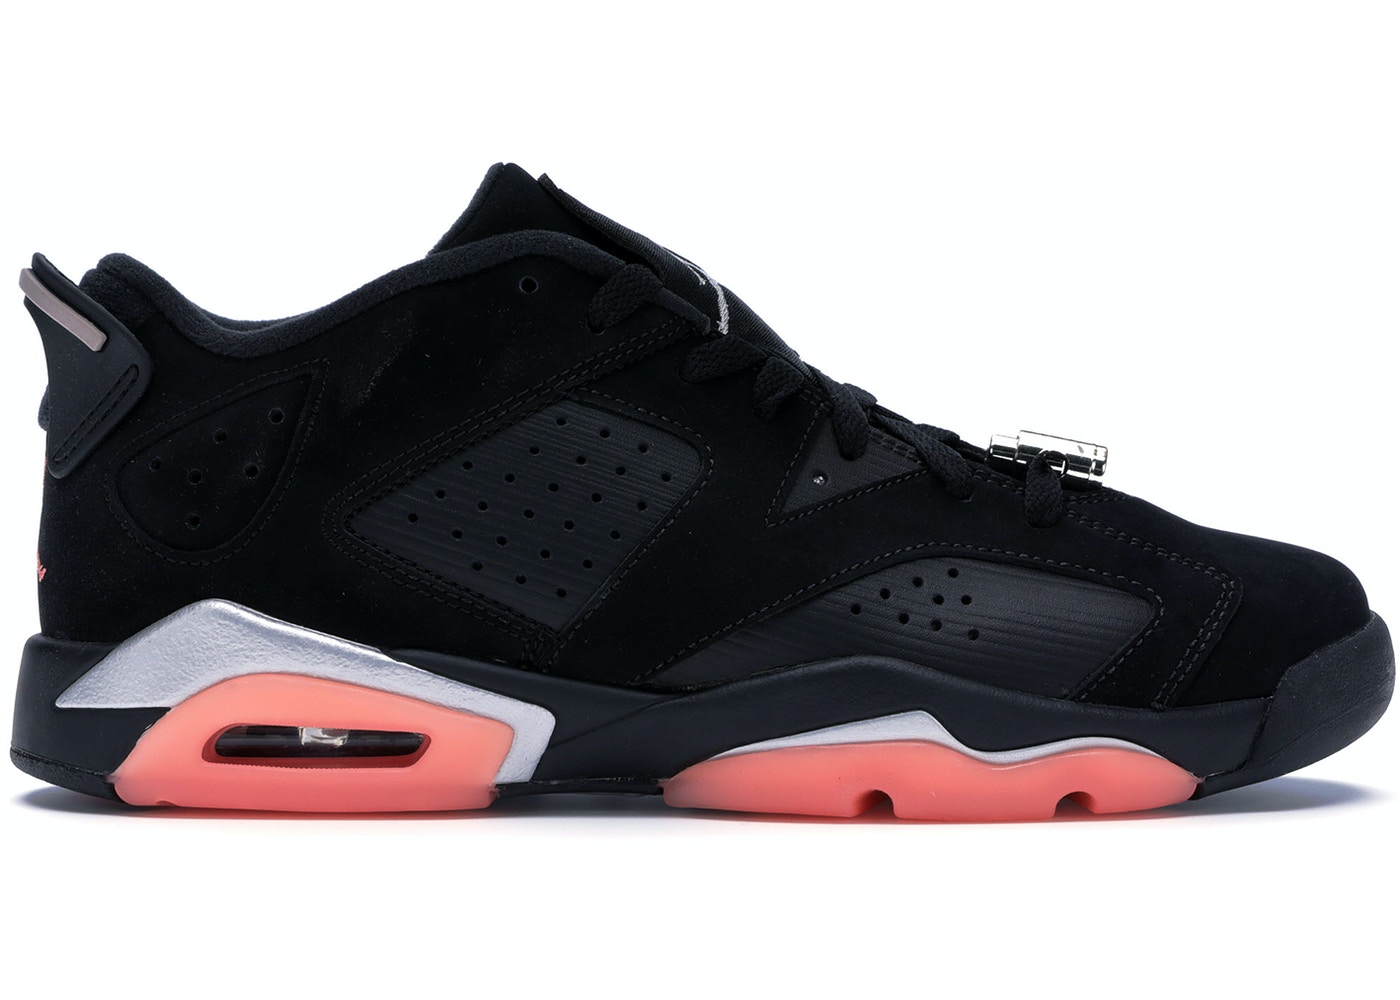 huge discount 96823 f8f3a Buy Air Jordan 6 Shoes   Deadstock Sneakers